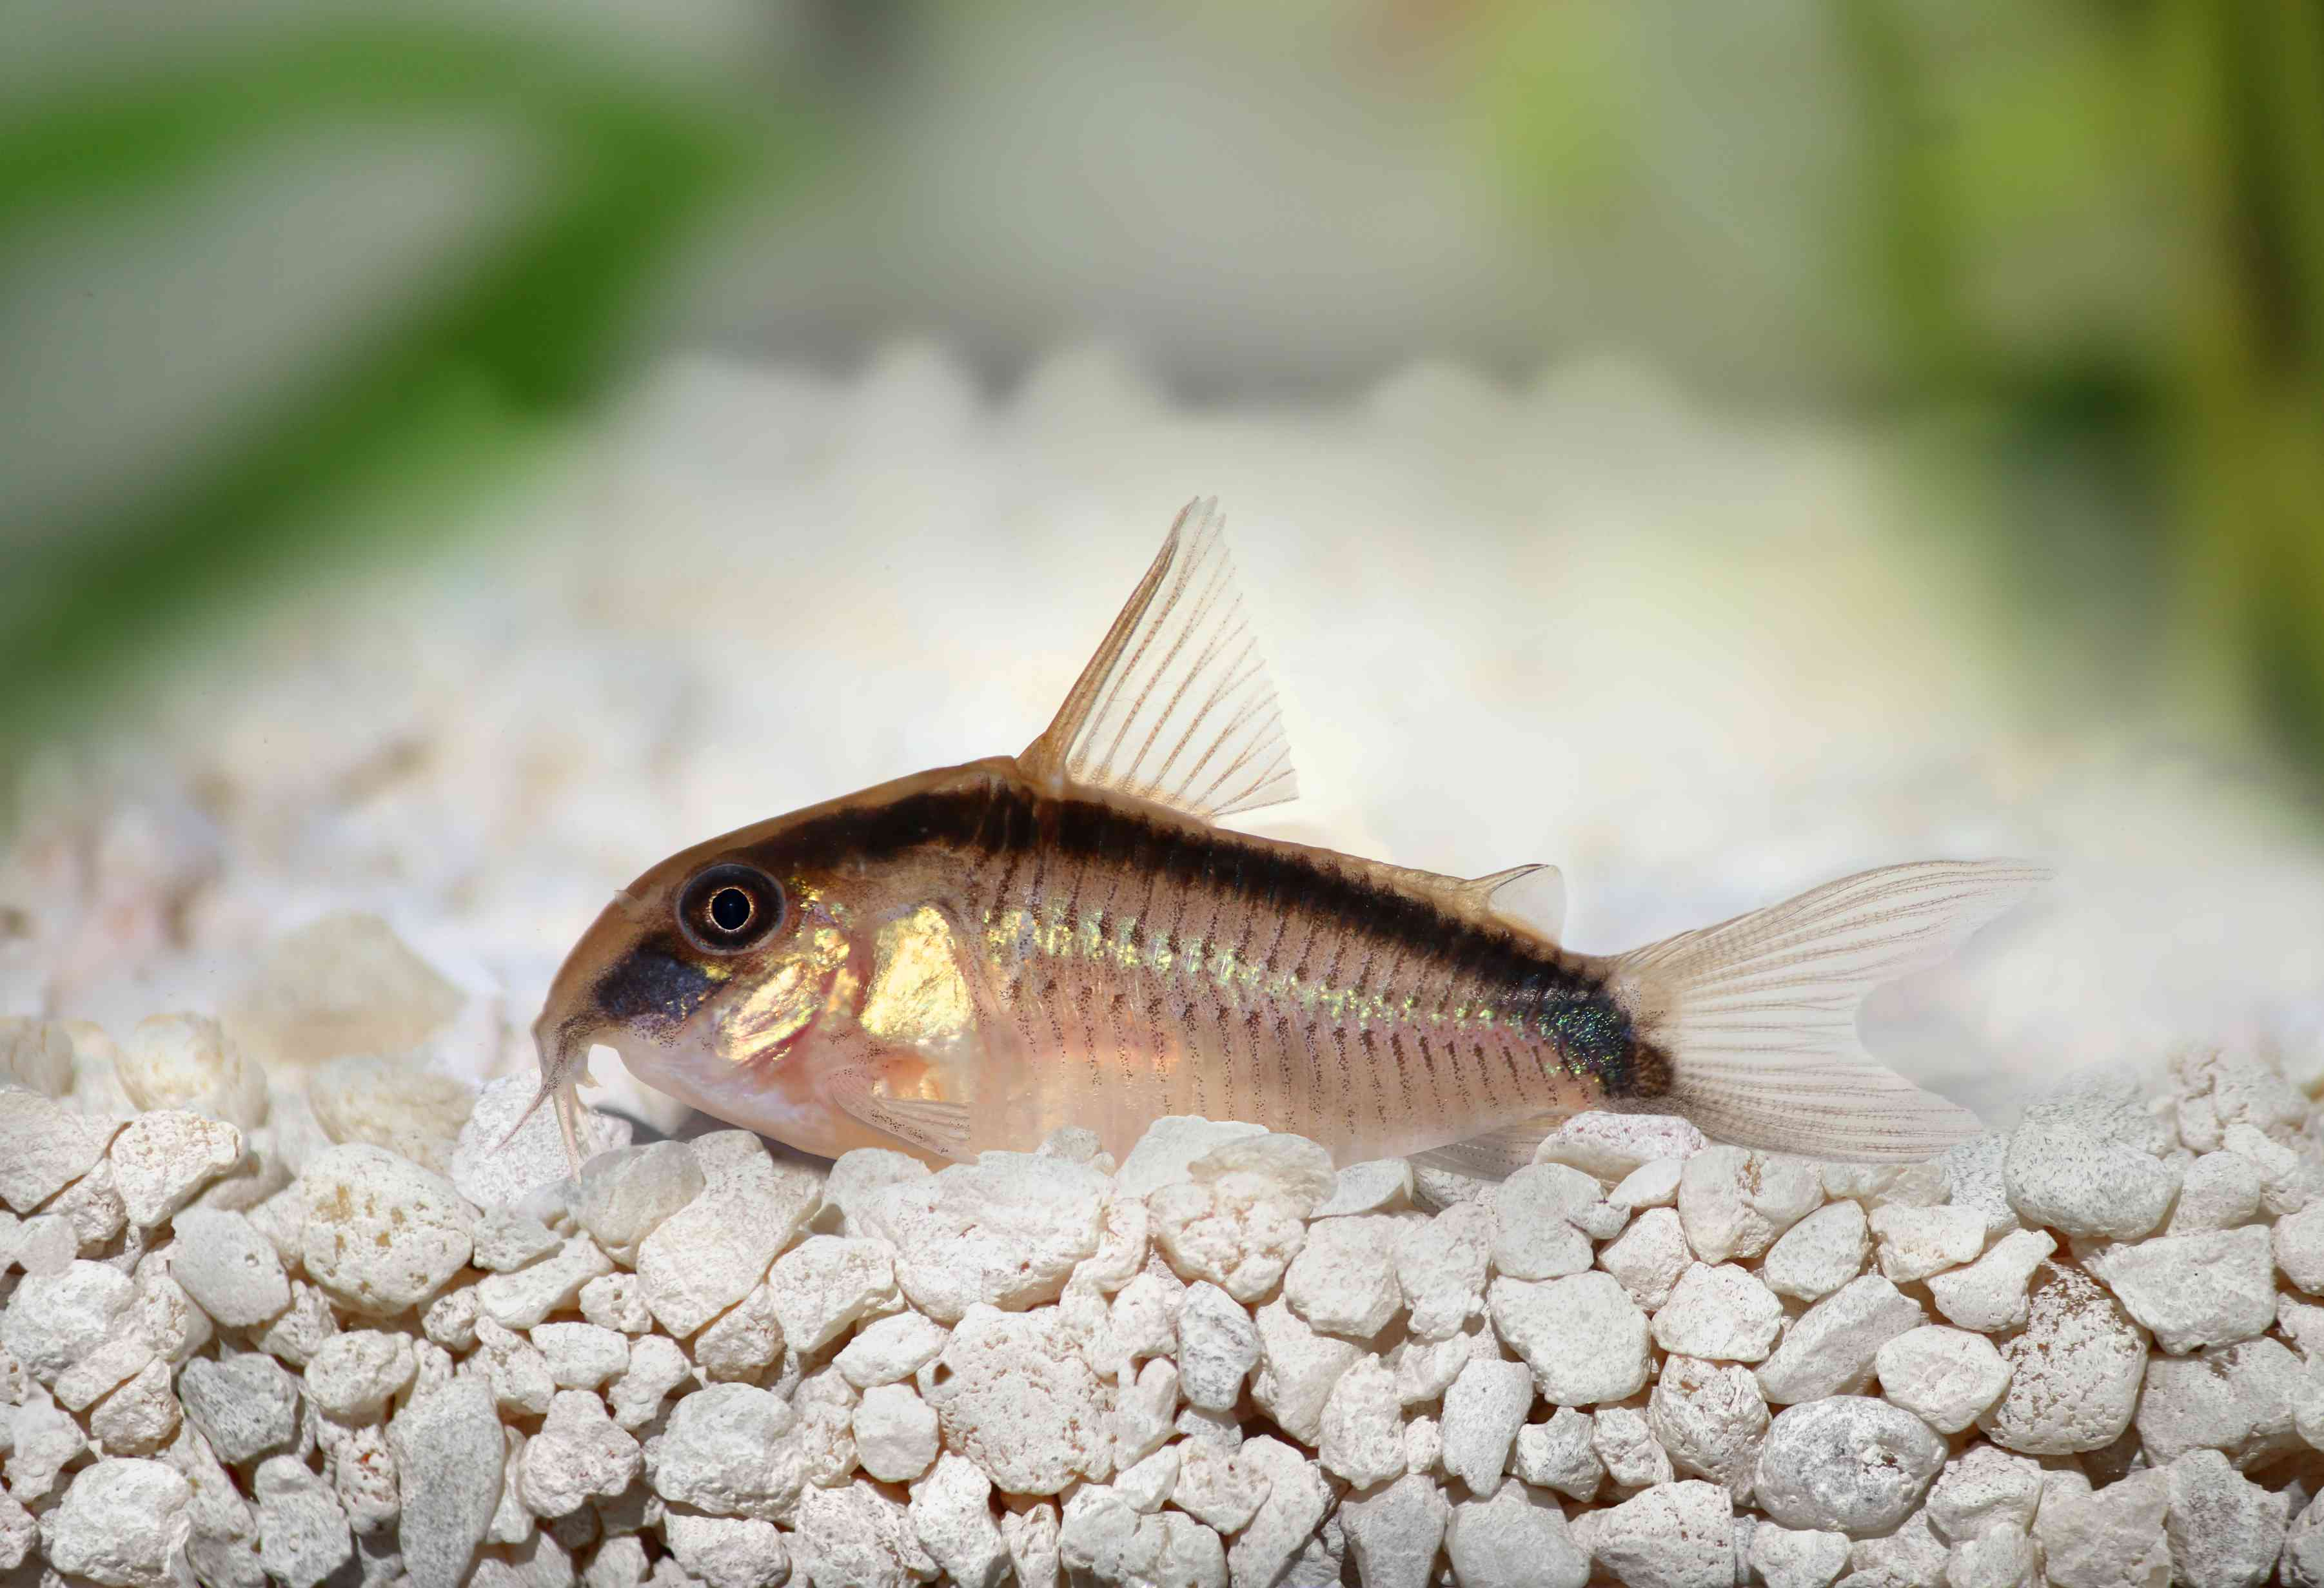 Skunk corydora resting on white rocky substrate